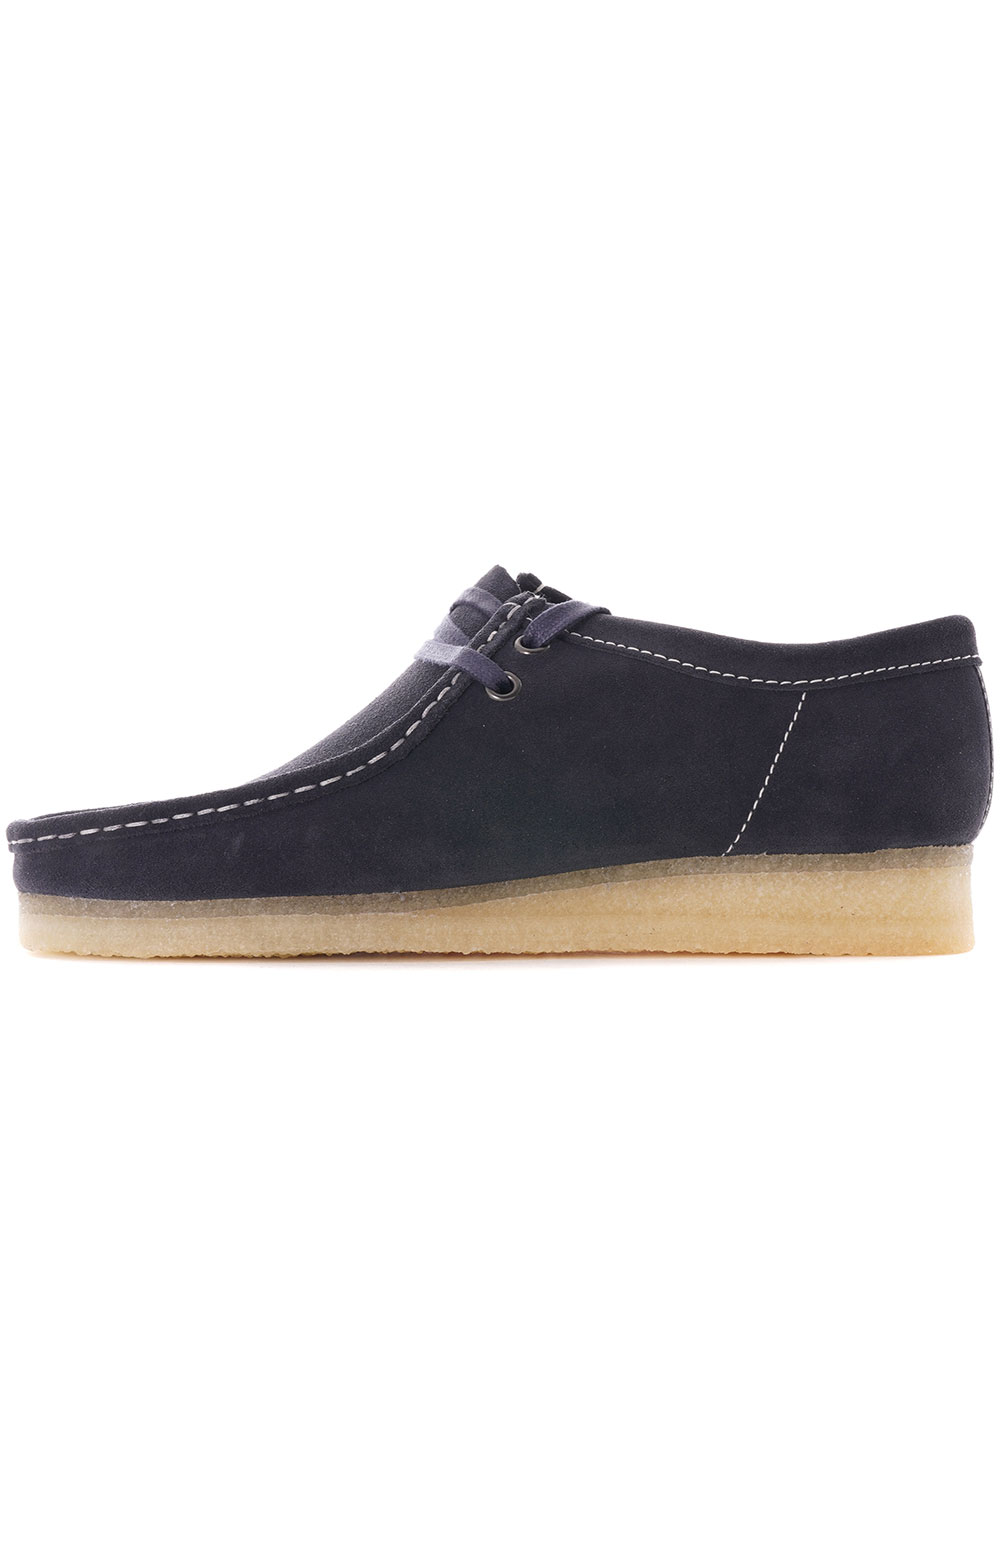 (26154744) Wallabee Shoes - Ink Suede 2